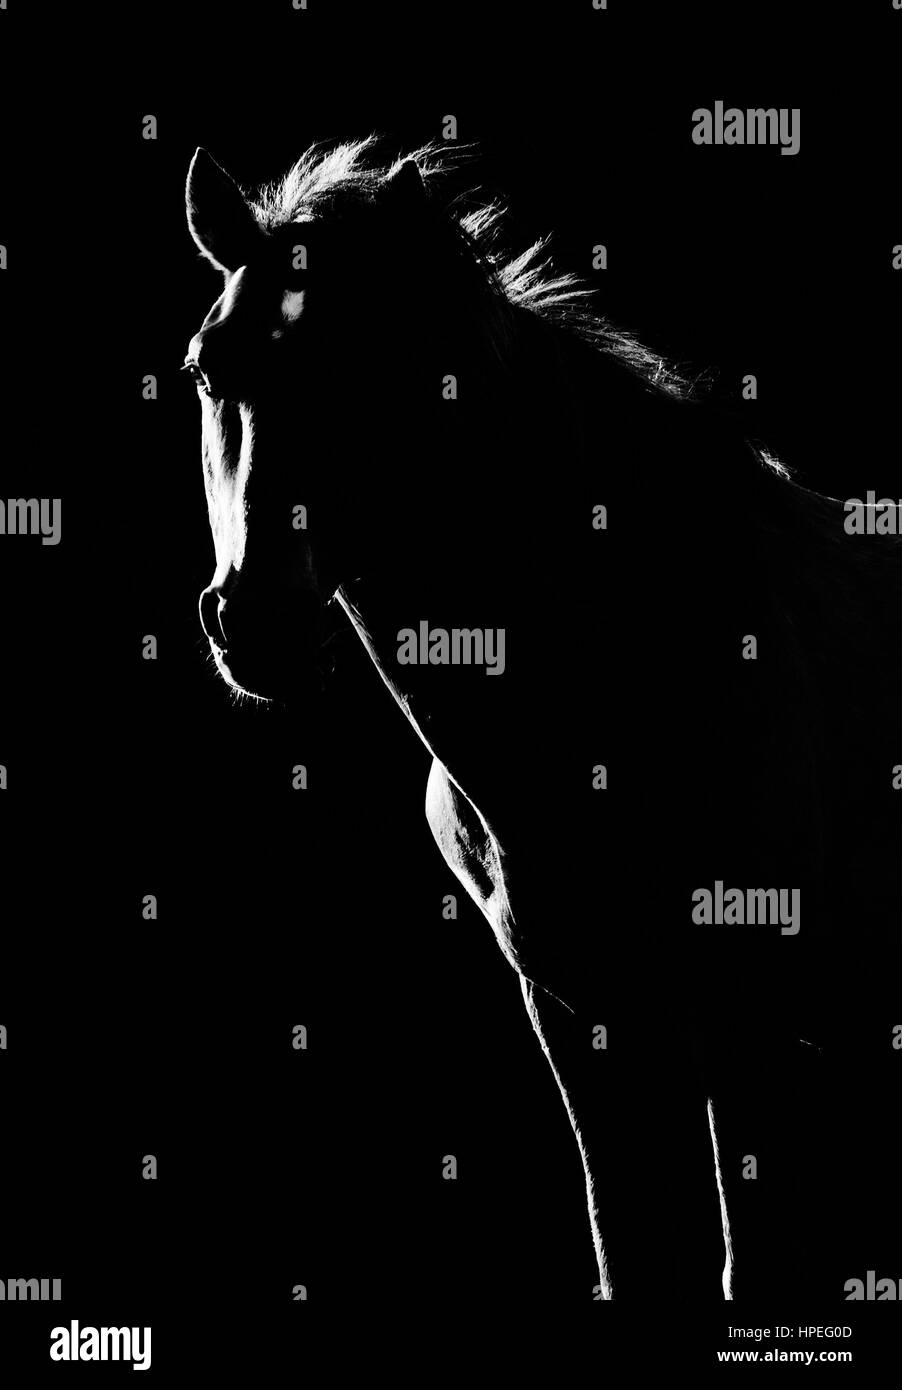 Wild Horse Silhouette In Black And White Stock Photo Alamy